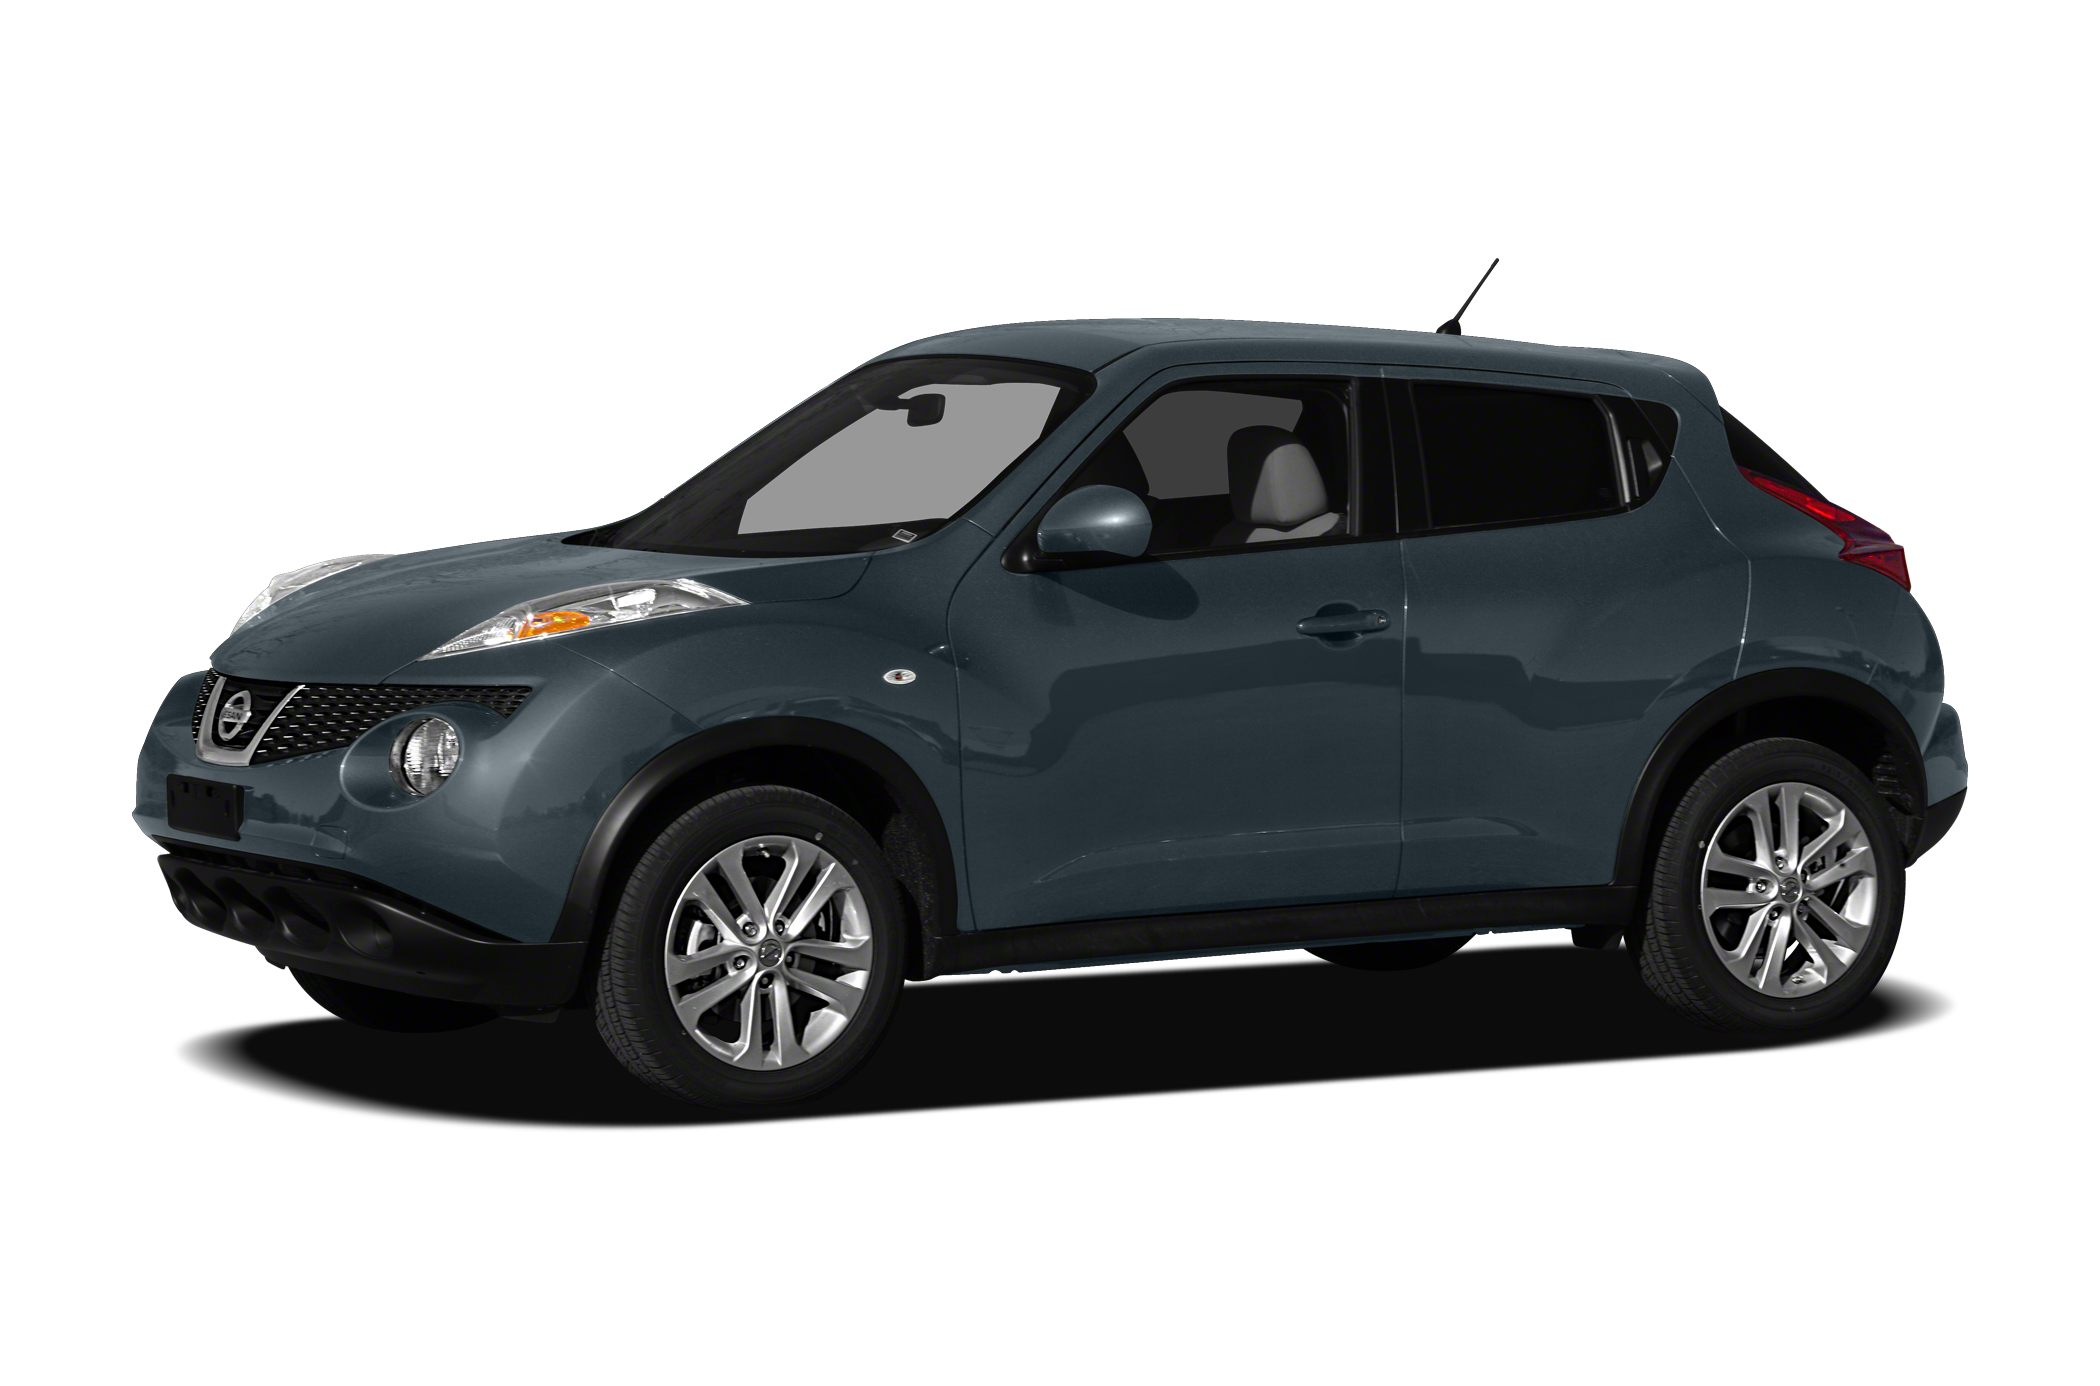 2011 Nissan Juke SV SUV for sale in Milford for $16,988 with 12,495 miles.